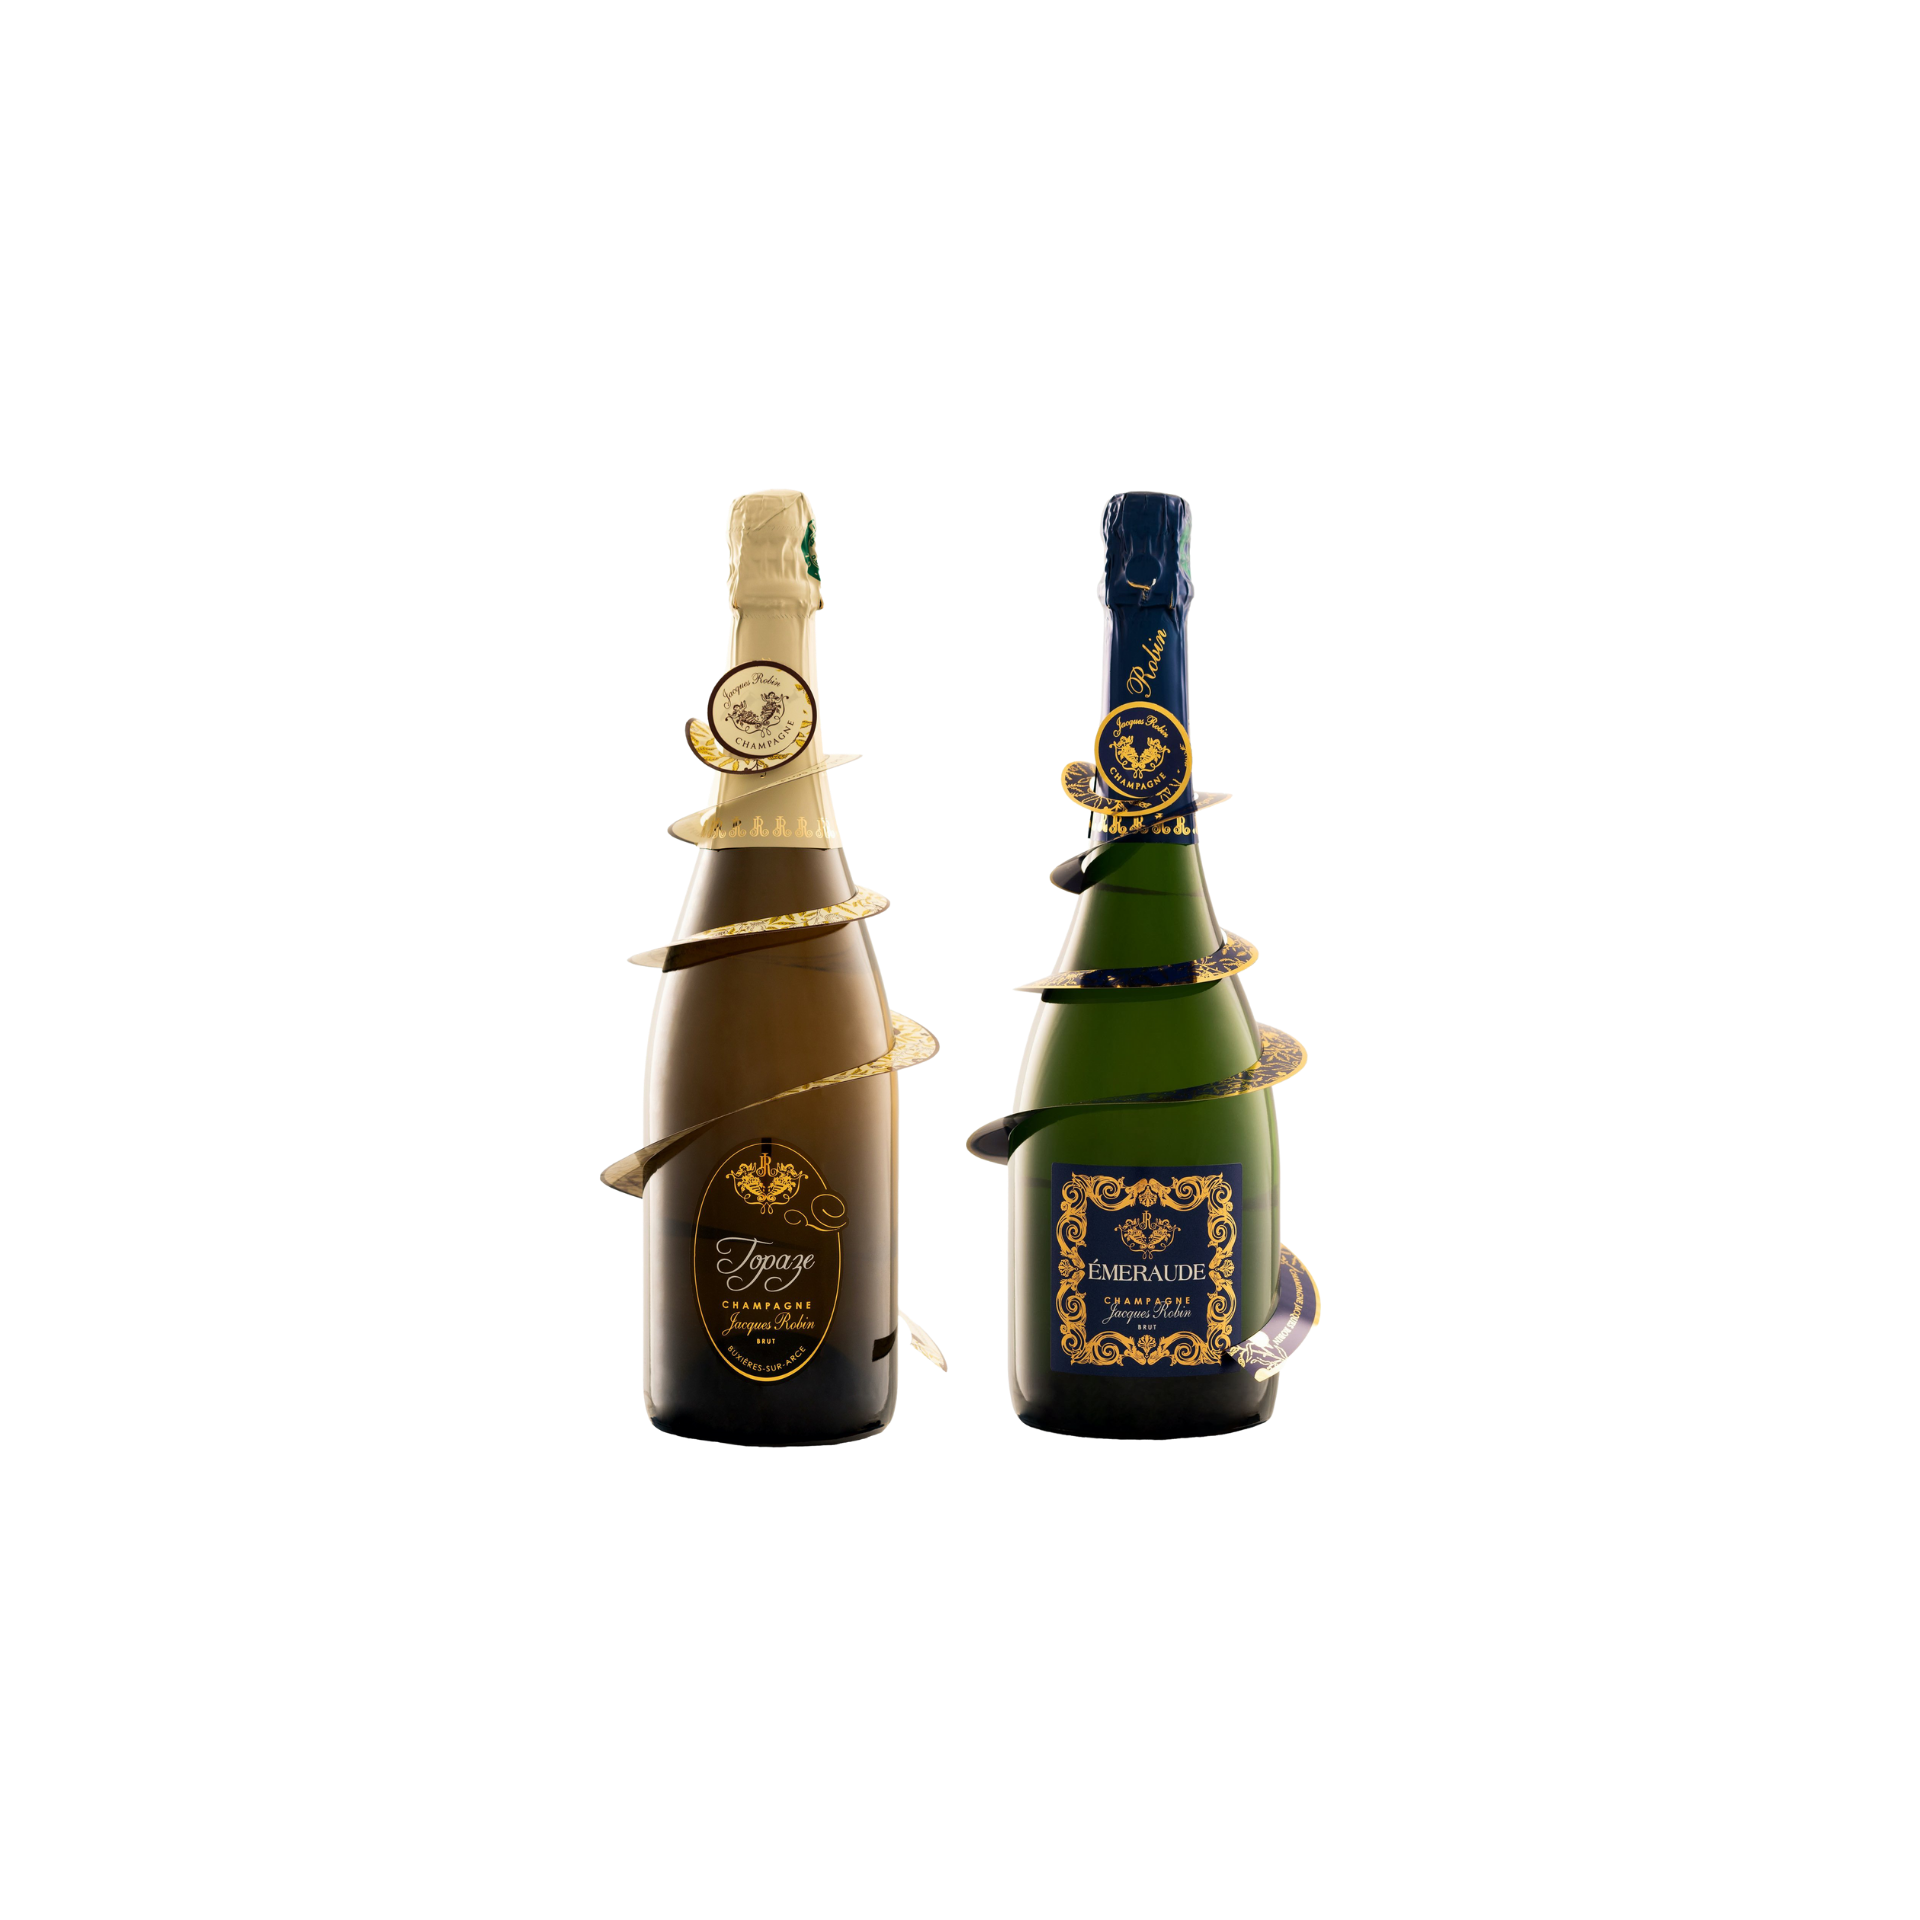 2 Bottles of Jacques Robin Champagne at $108 (UP $136)